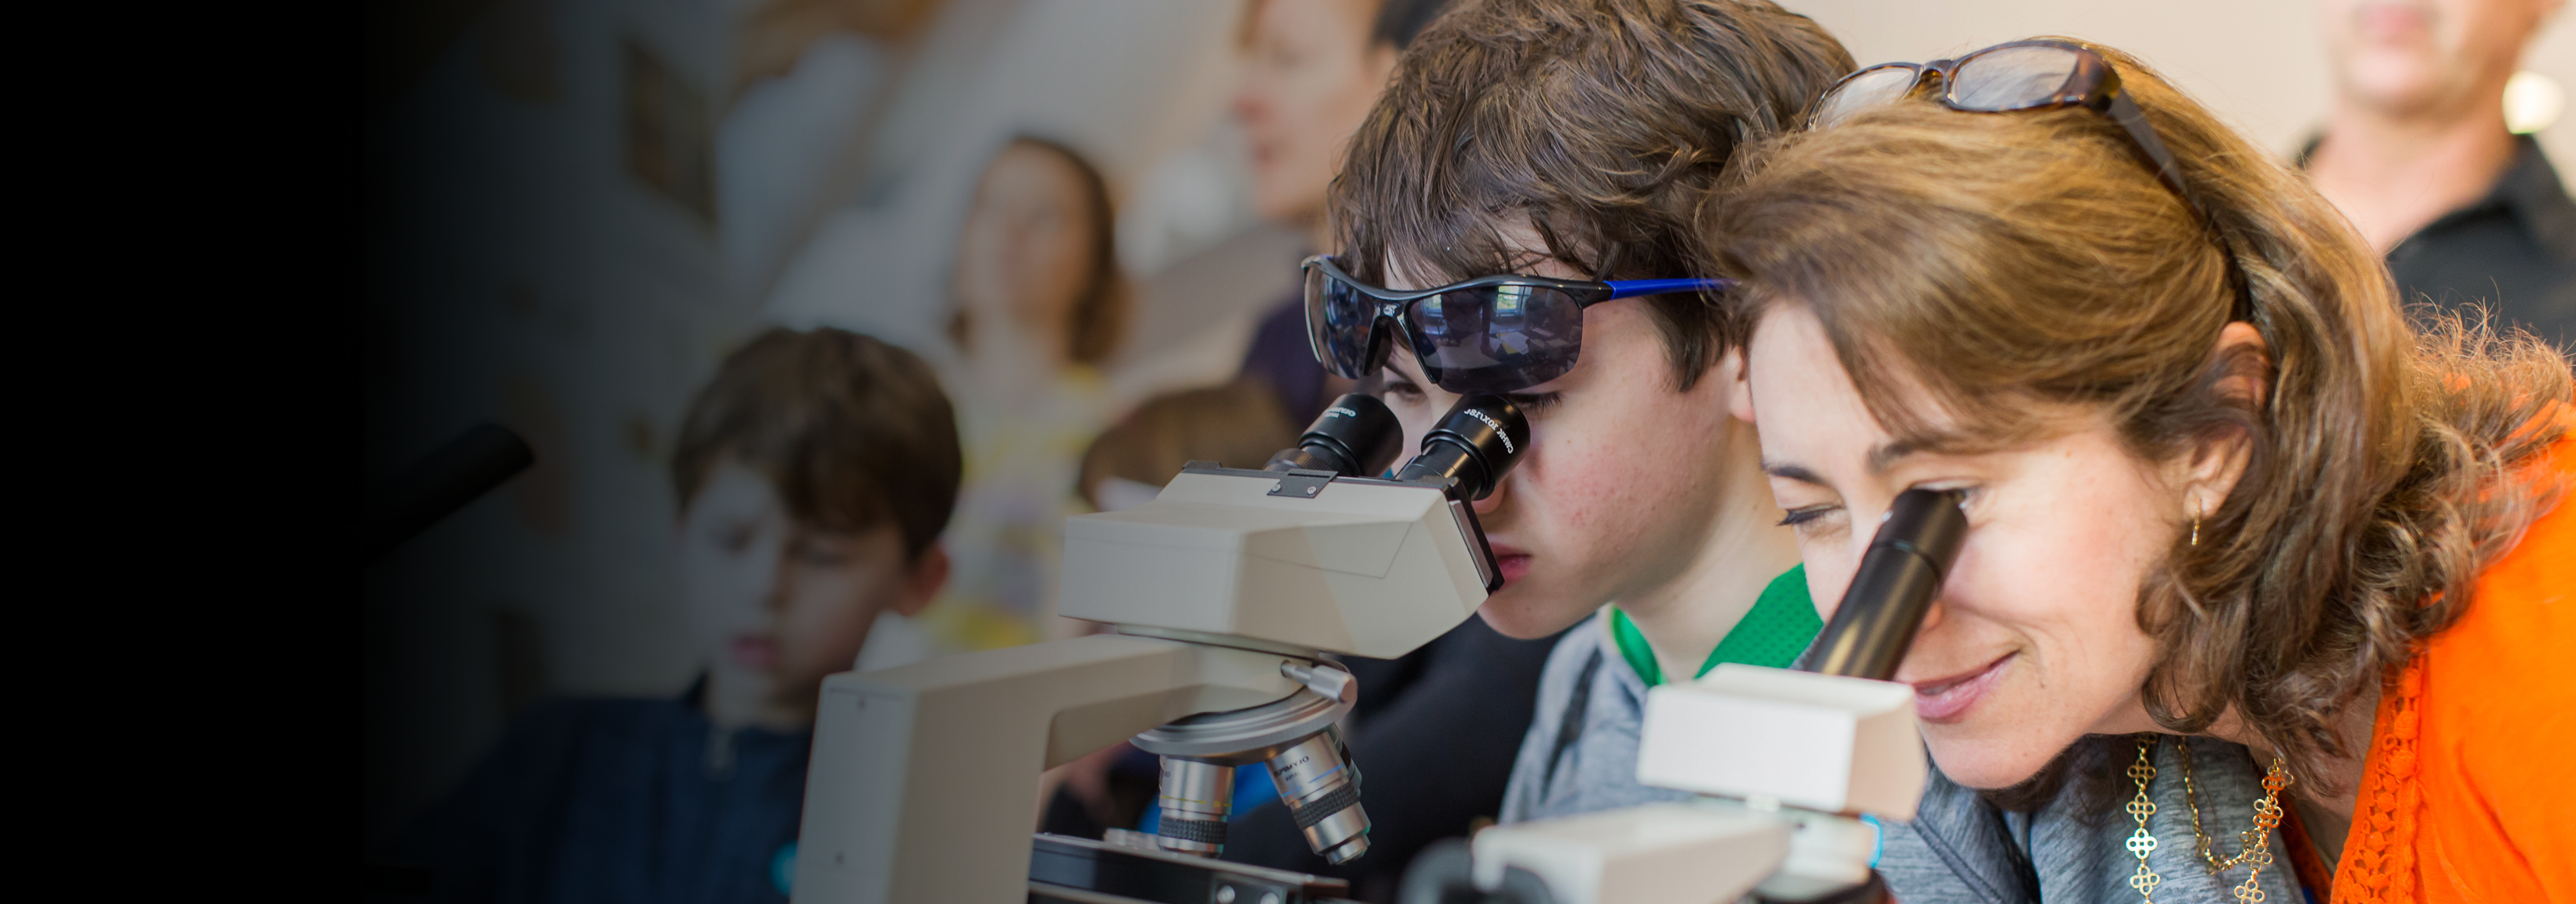 Student and teacher at microscope